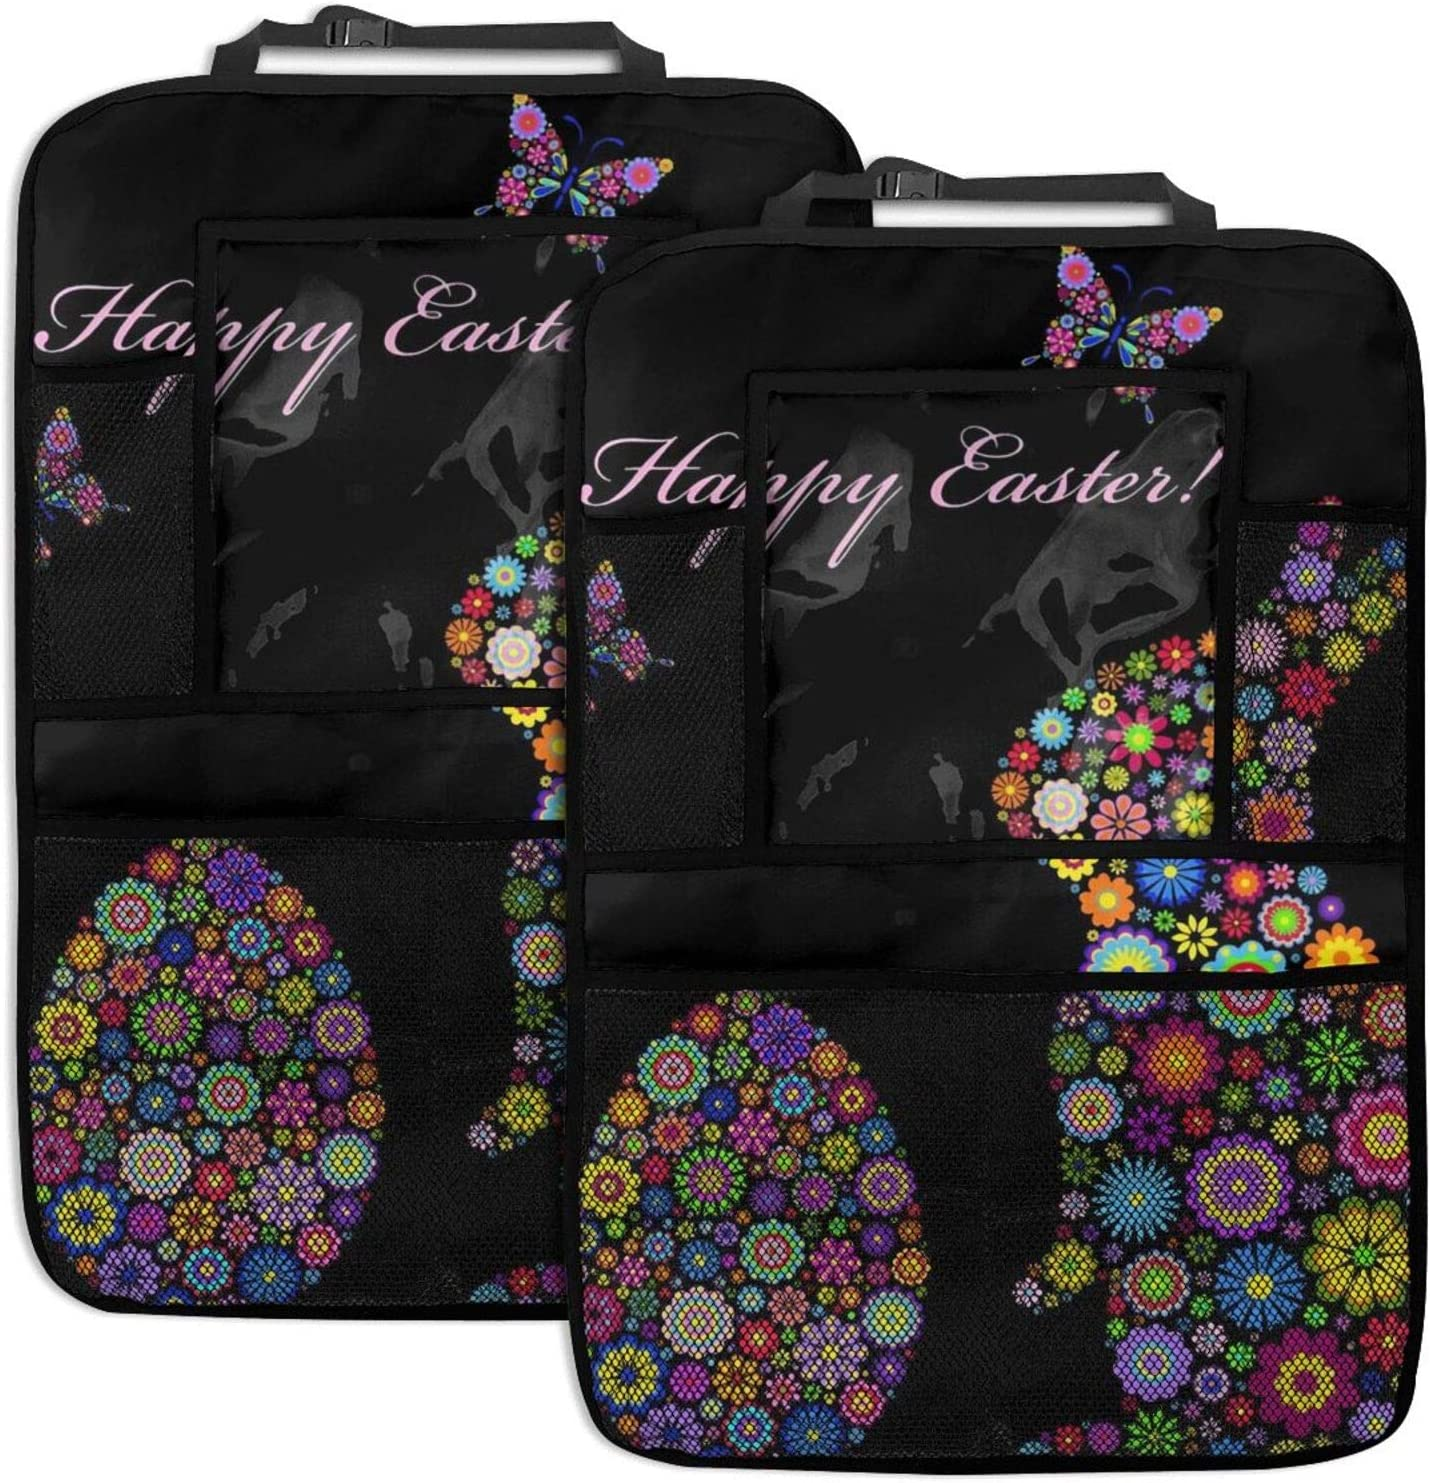 NELife Backseat Organizer 2 Pack - Egg Easter S Classic Ranking integrated 1st place Bunny Floral Car